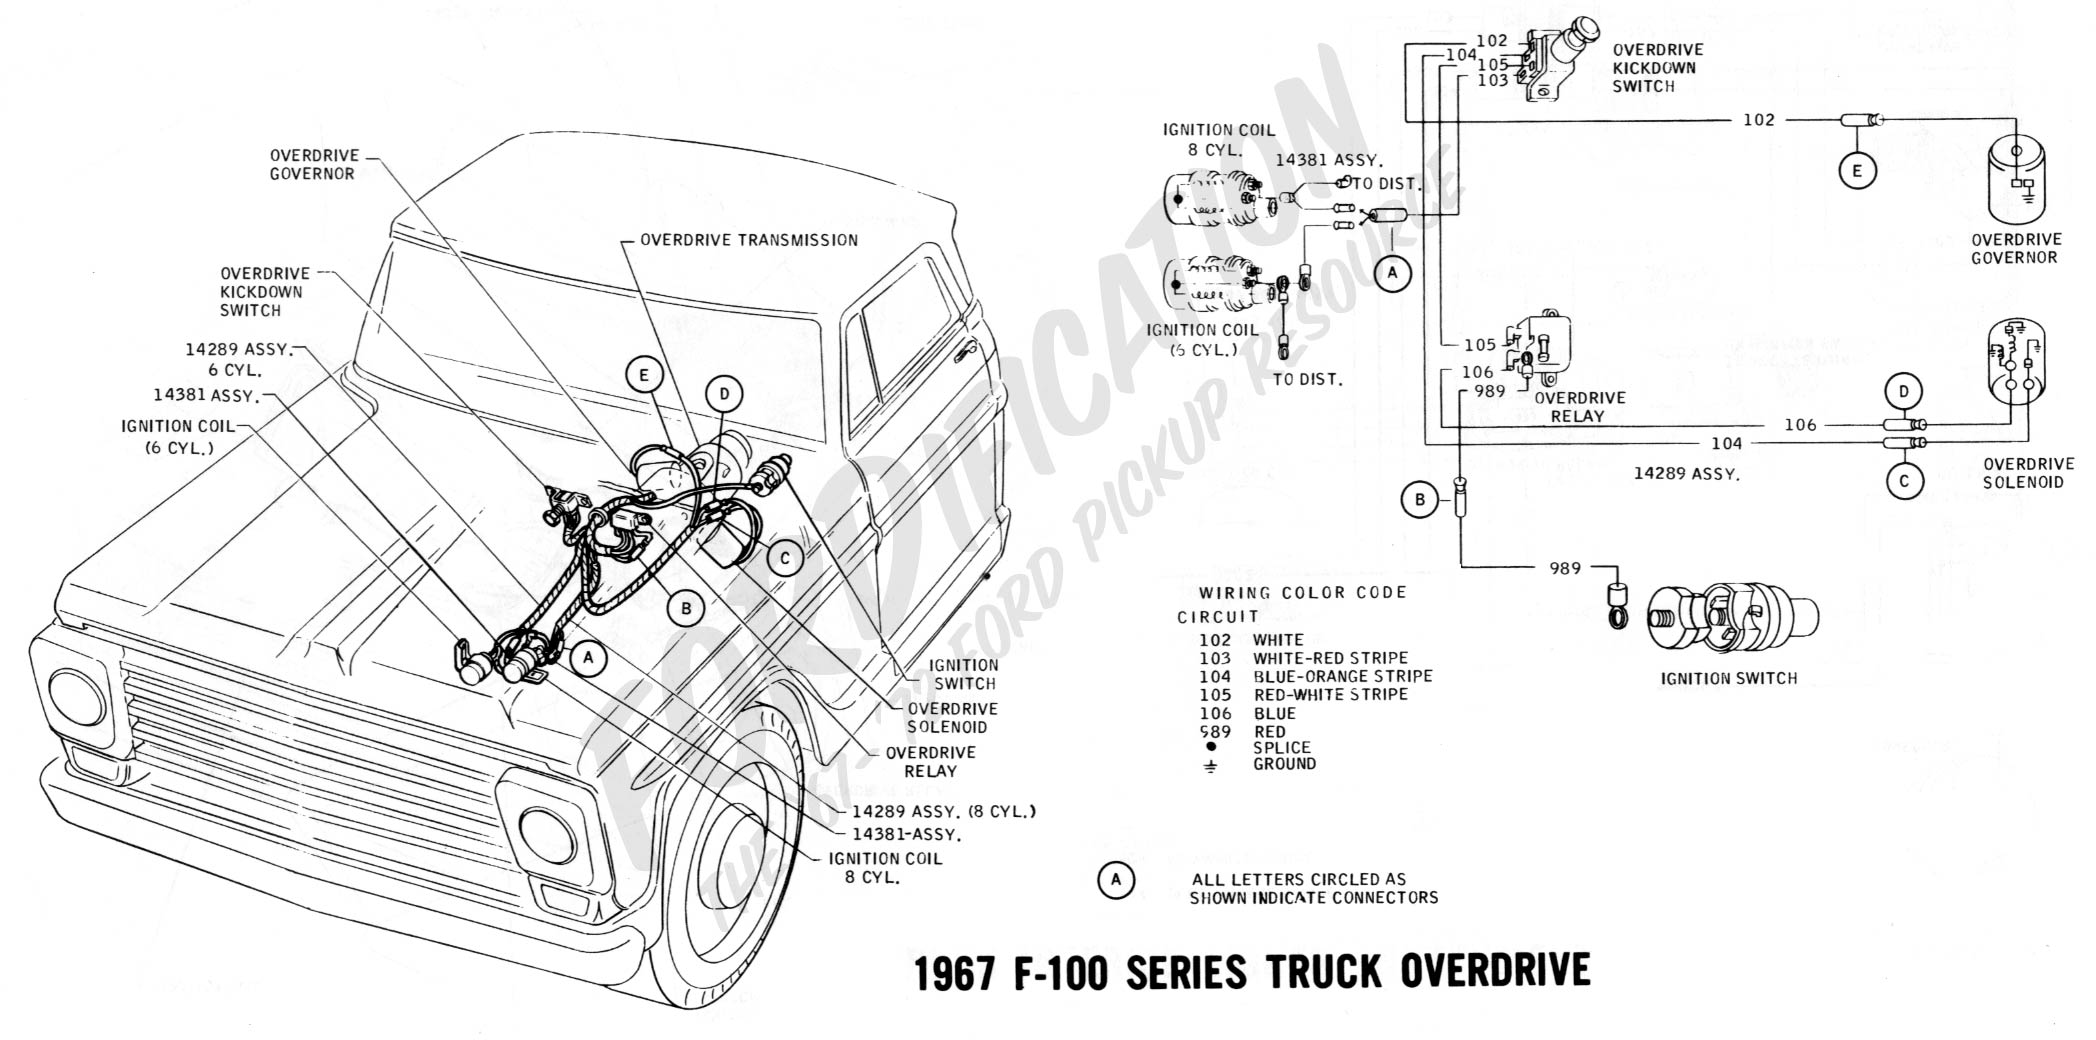 wiring 1967overdrive2 ford truck technical drawings and schematics section h wiring 1972 ford f100 fuse box diagram at n-0.co